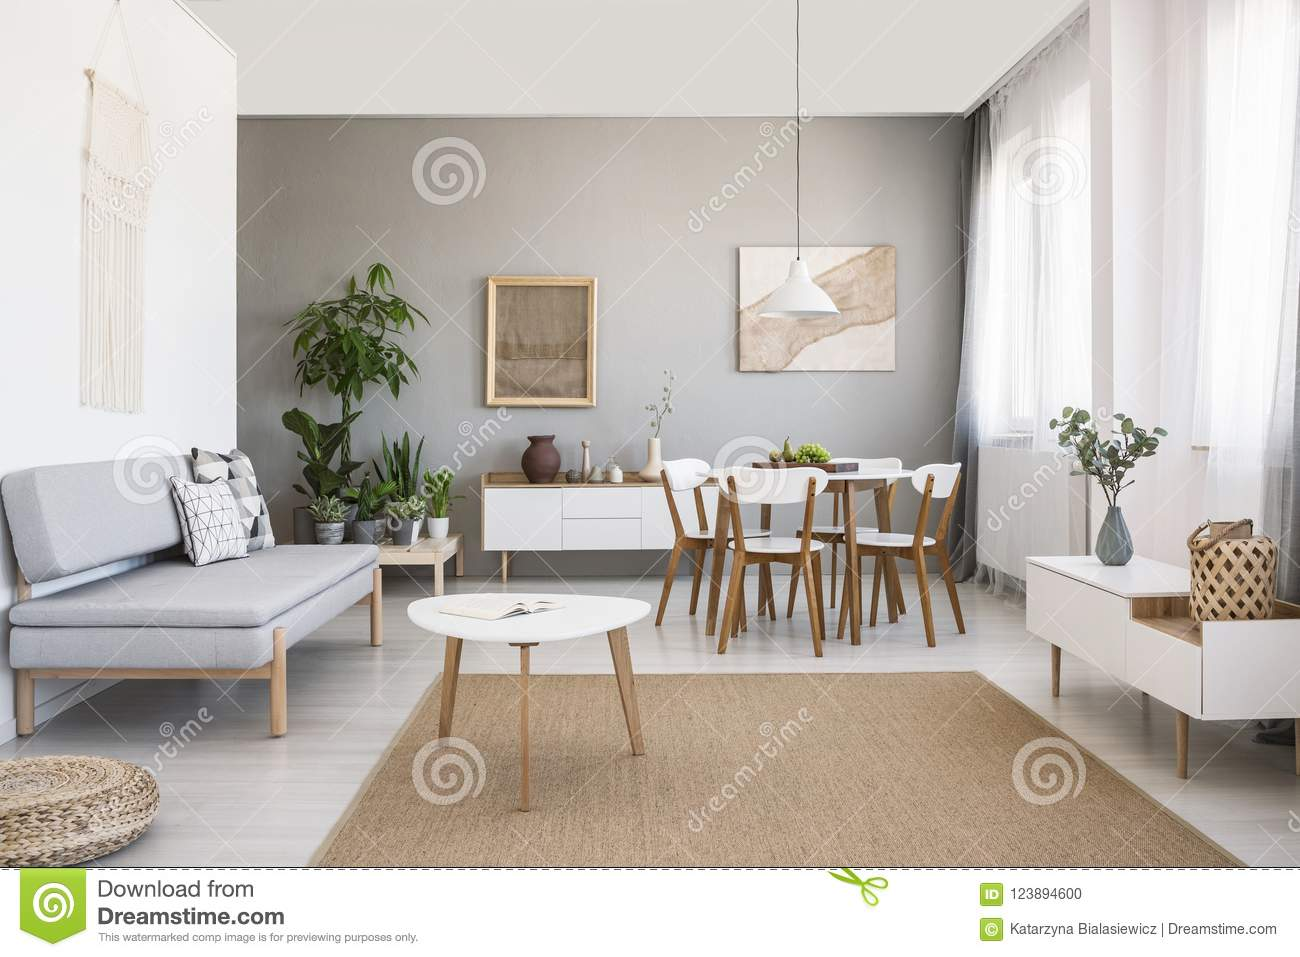 White Table On Brown Carpet In Living Room Interior With ...